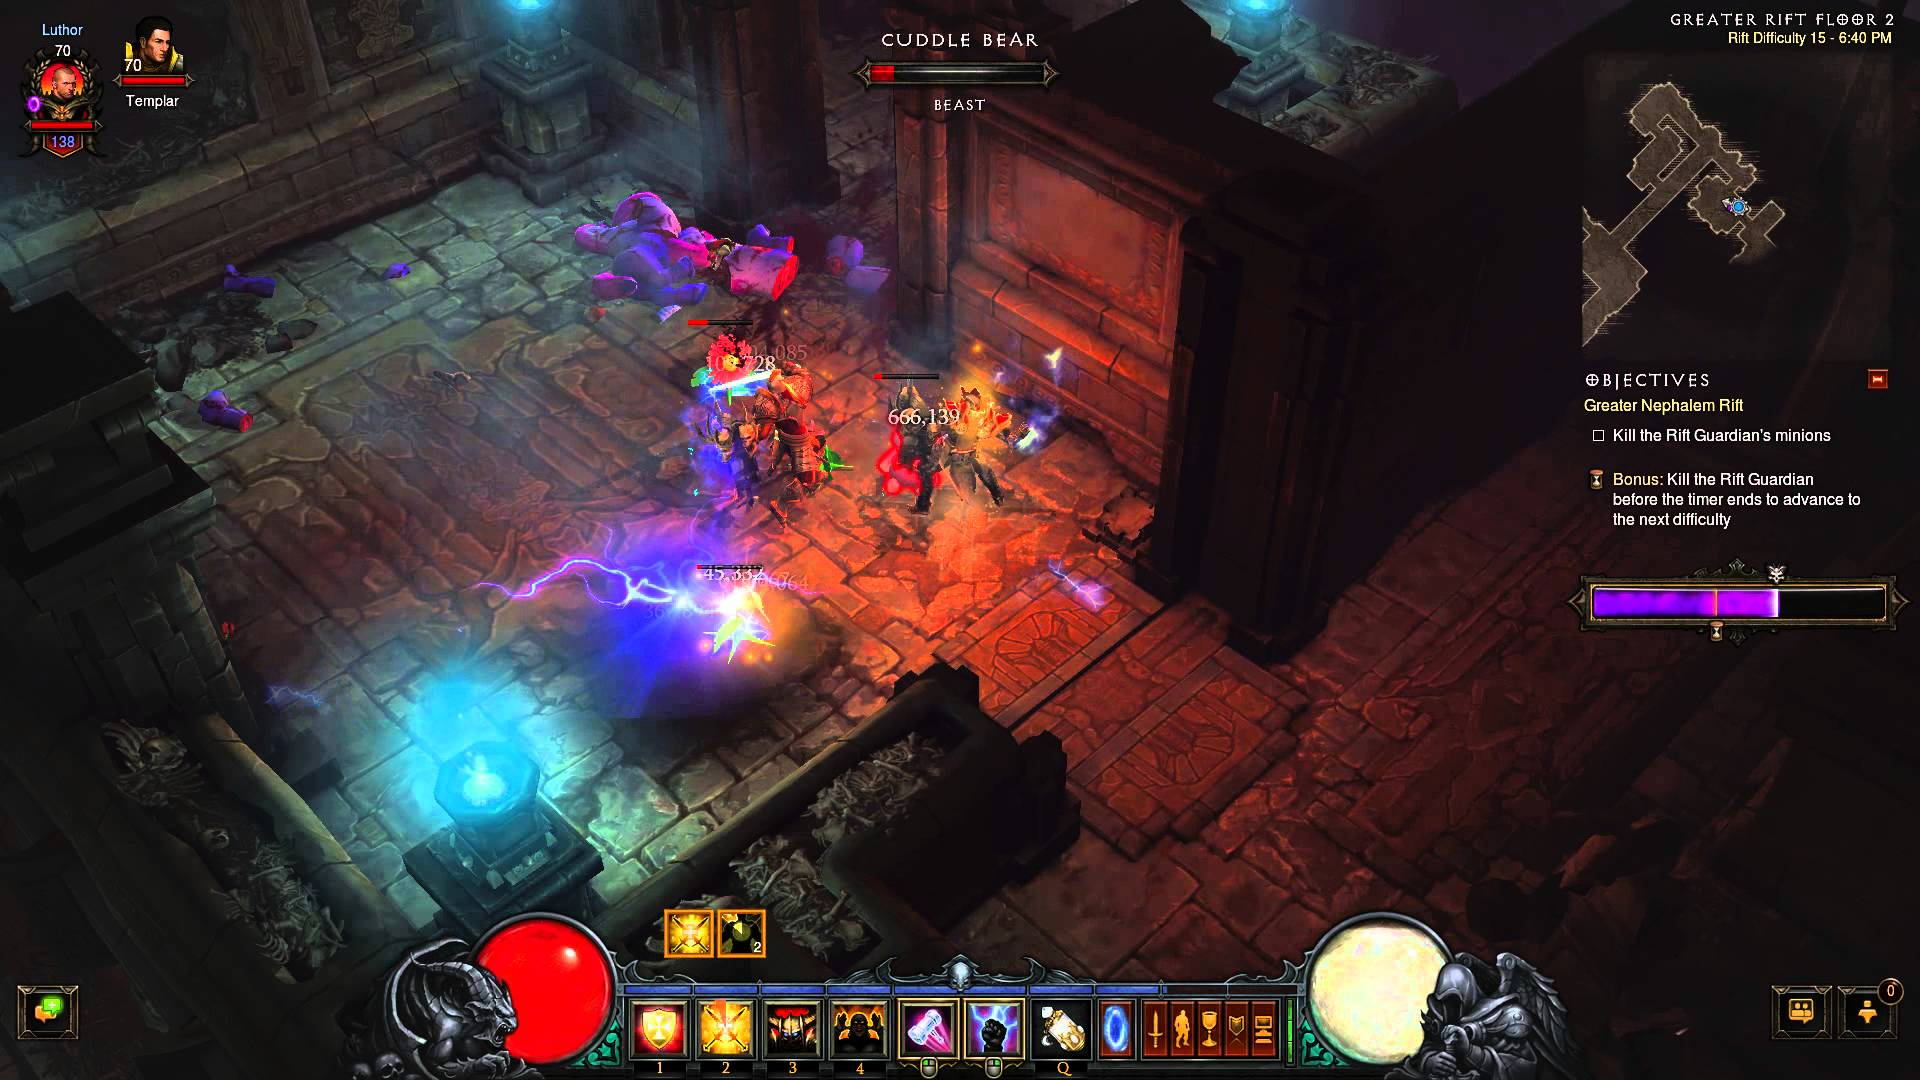 Diablo III – Greater Rift – Whimsyshire Enemies